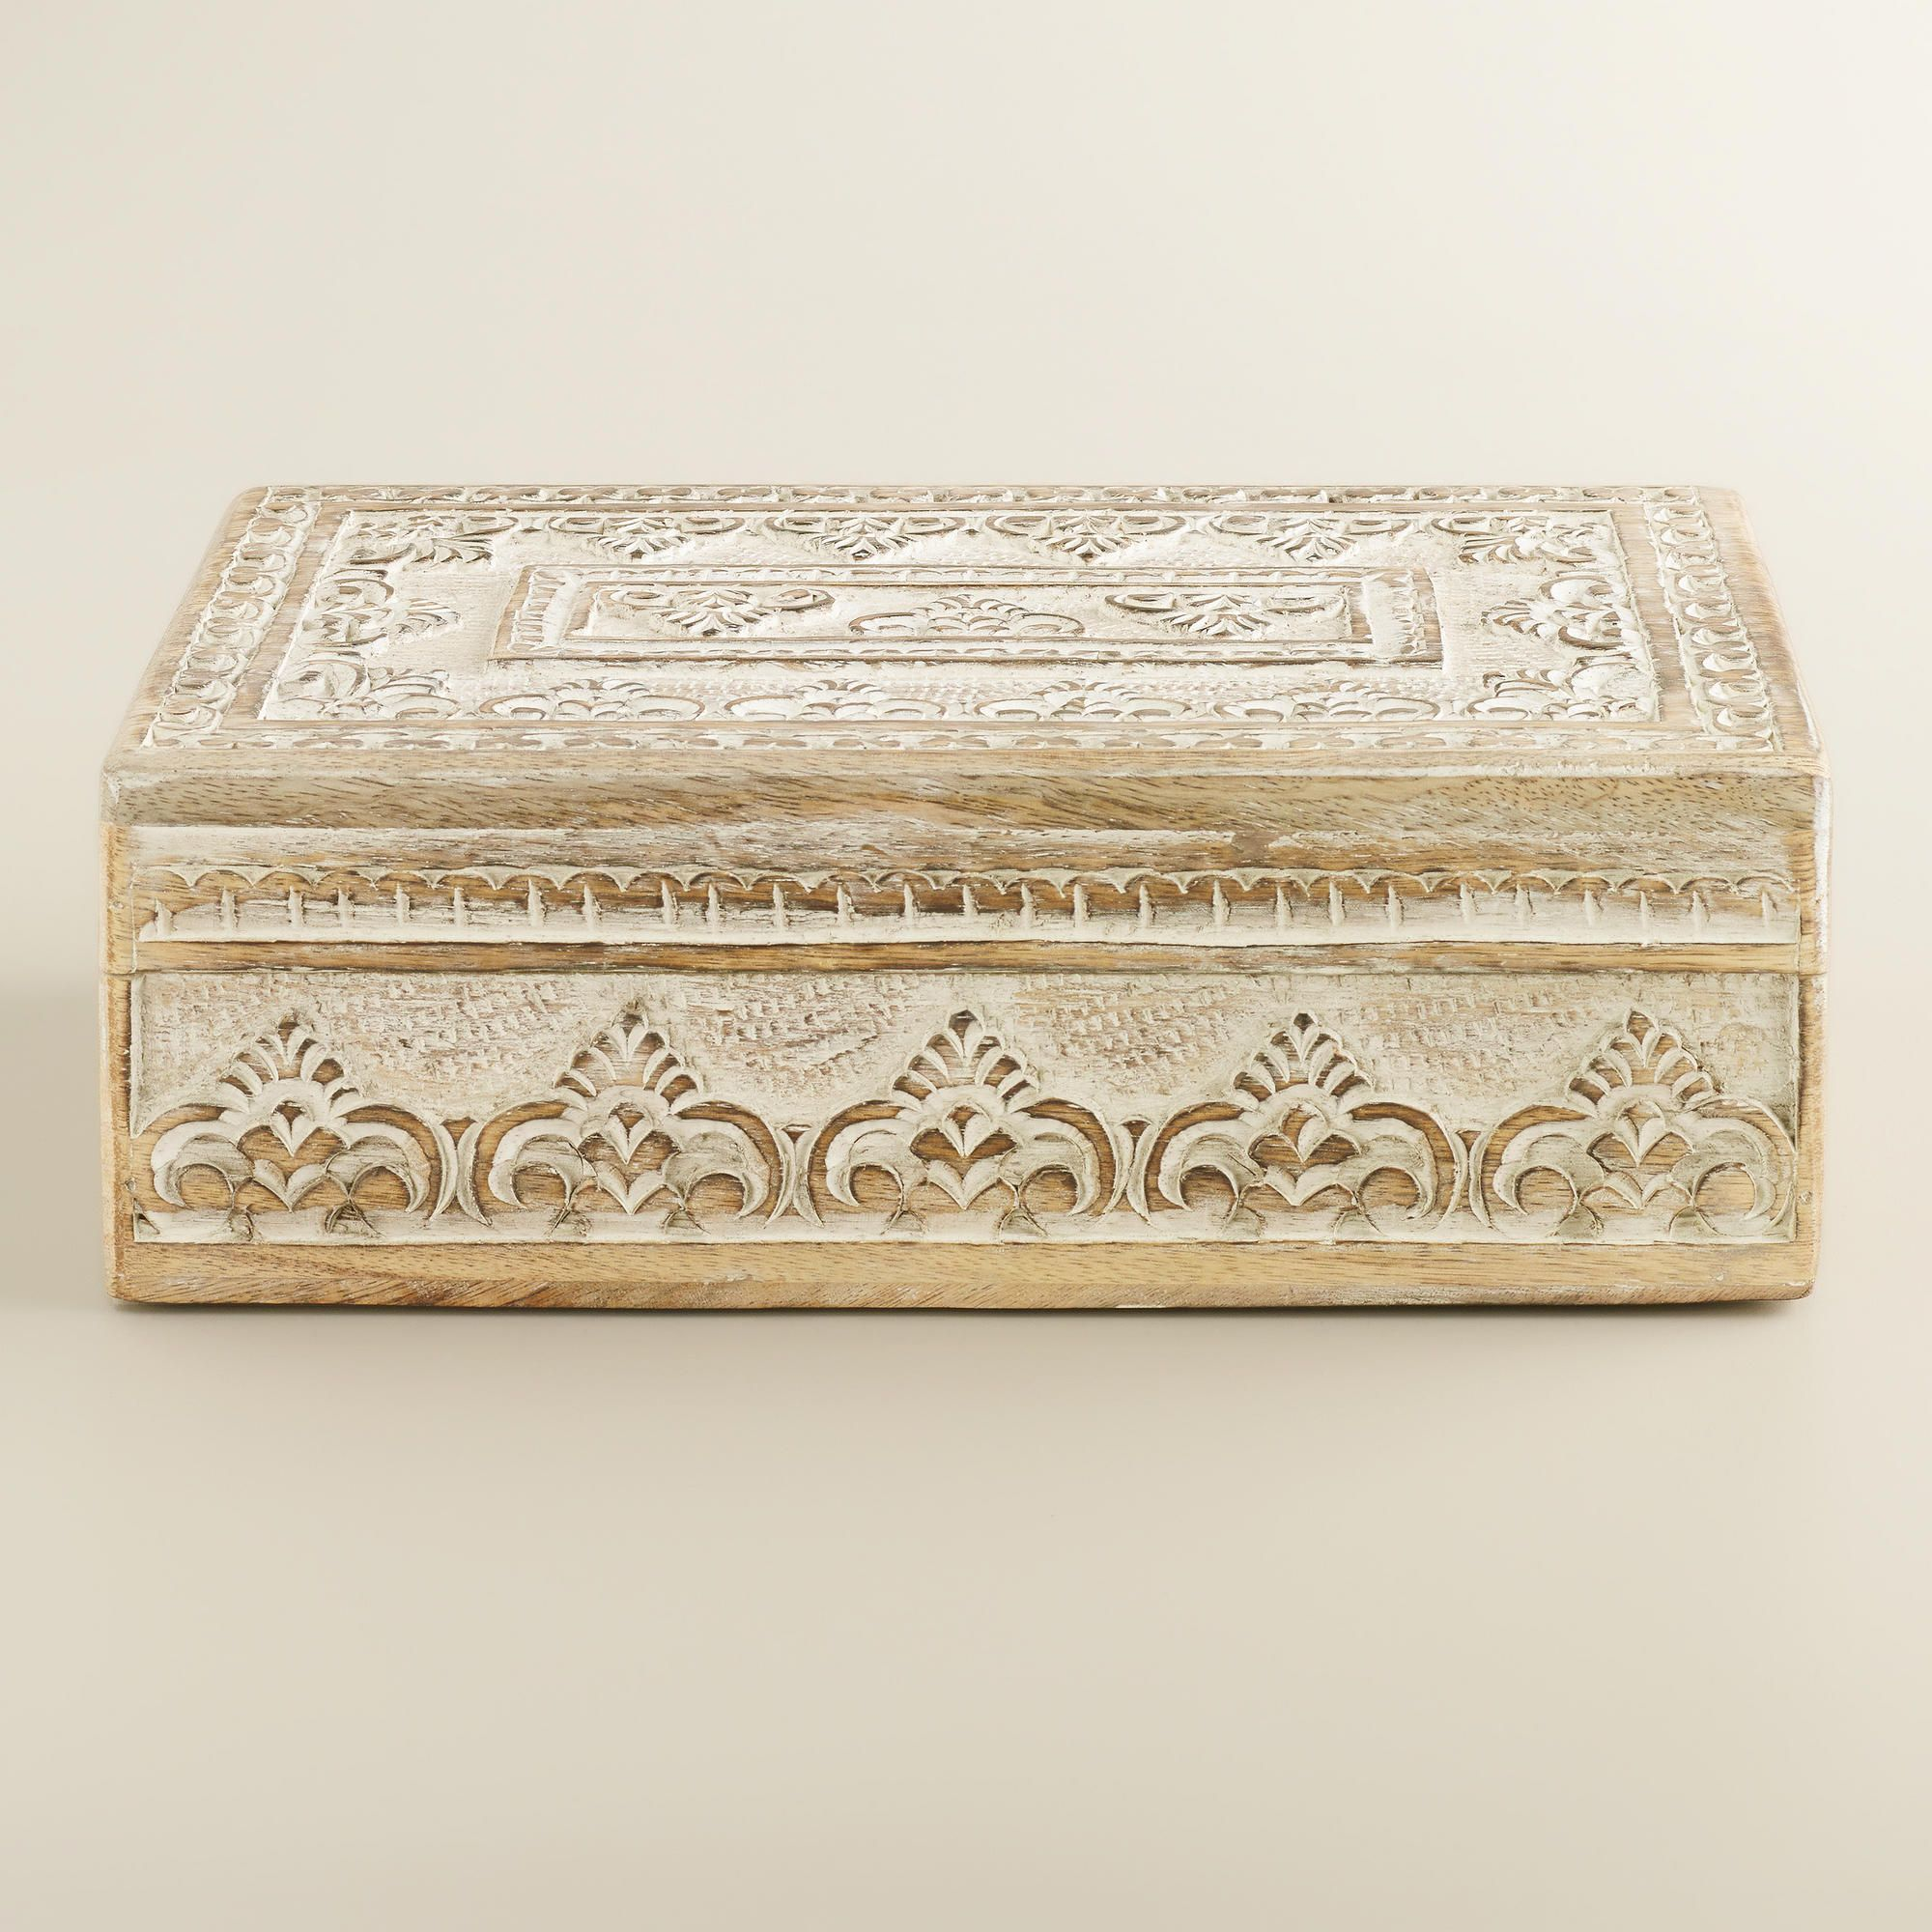 World Market Jewelry Box Brilliant Whitewash Carved Brooklyn Jewelry Box  World Market  Boudoir Inspiration